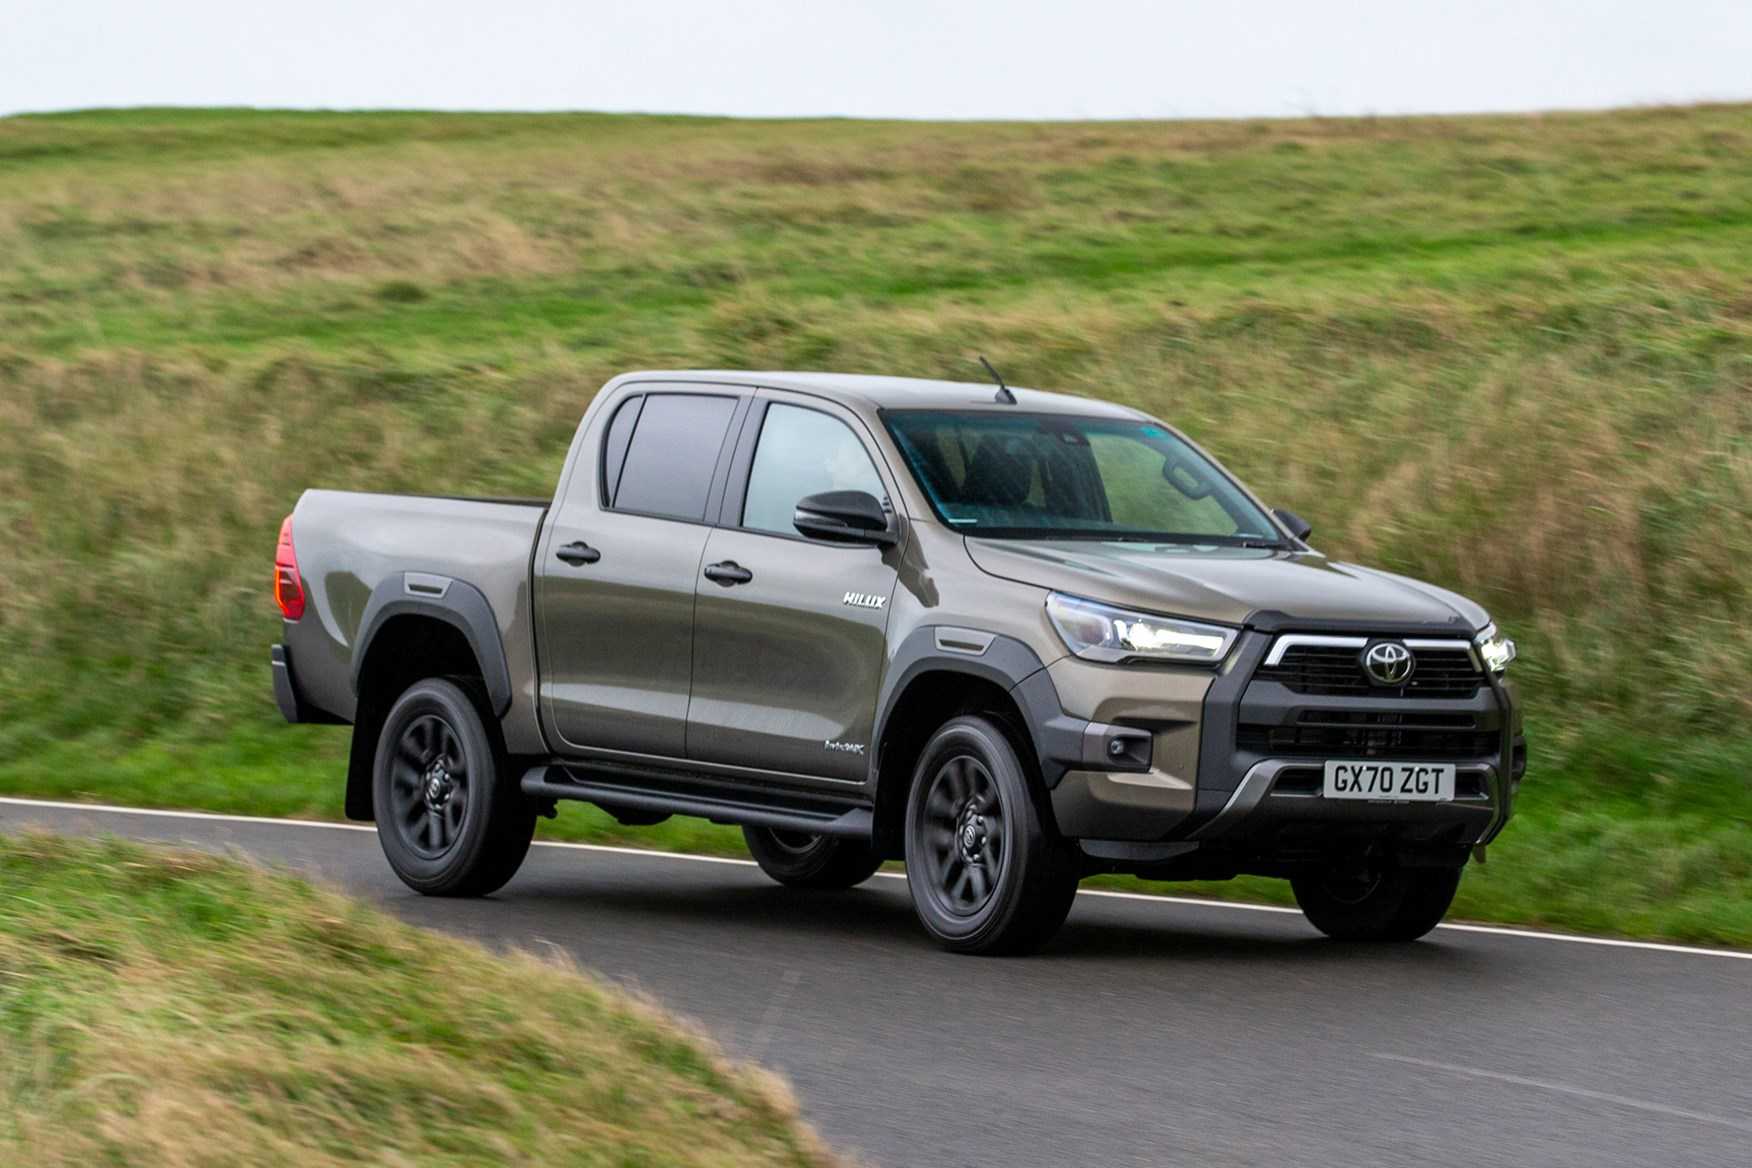 Toyota Hilux review, 2020 facelift, front view, rolling round corner, Invincible X, bronze